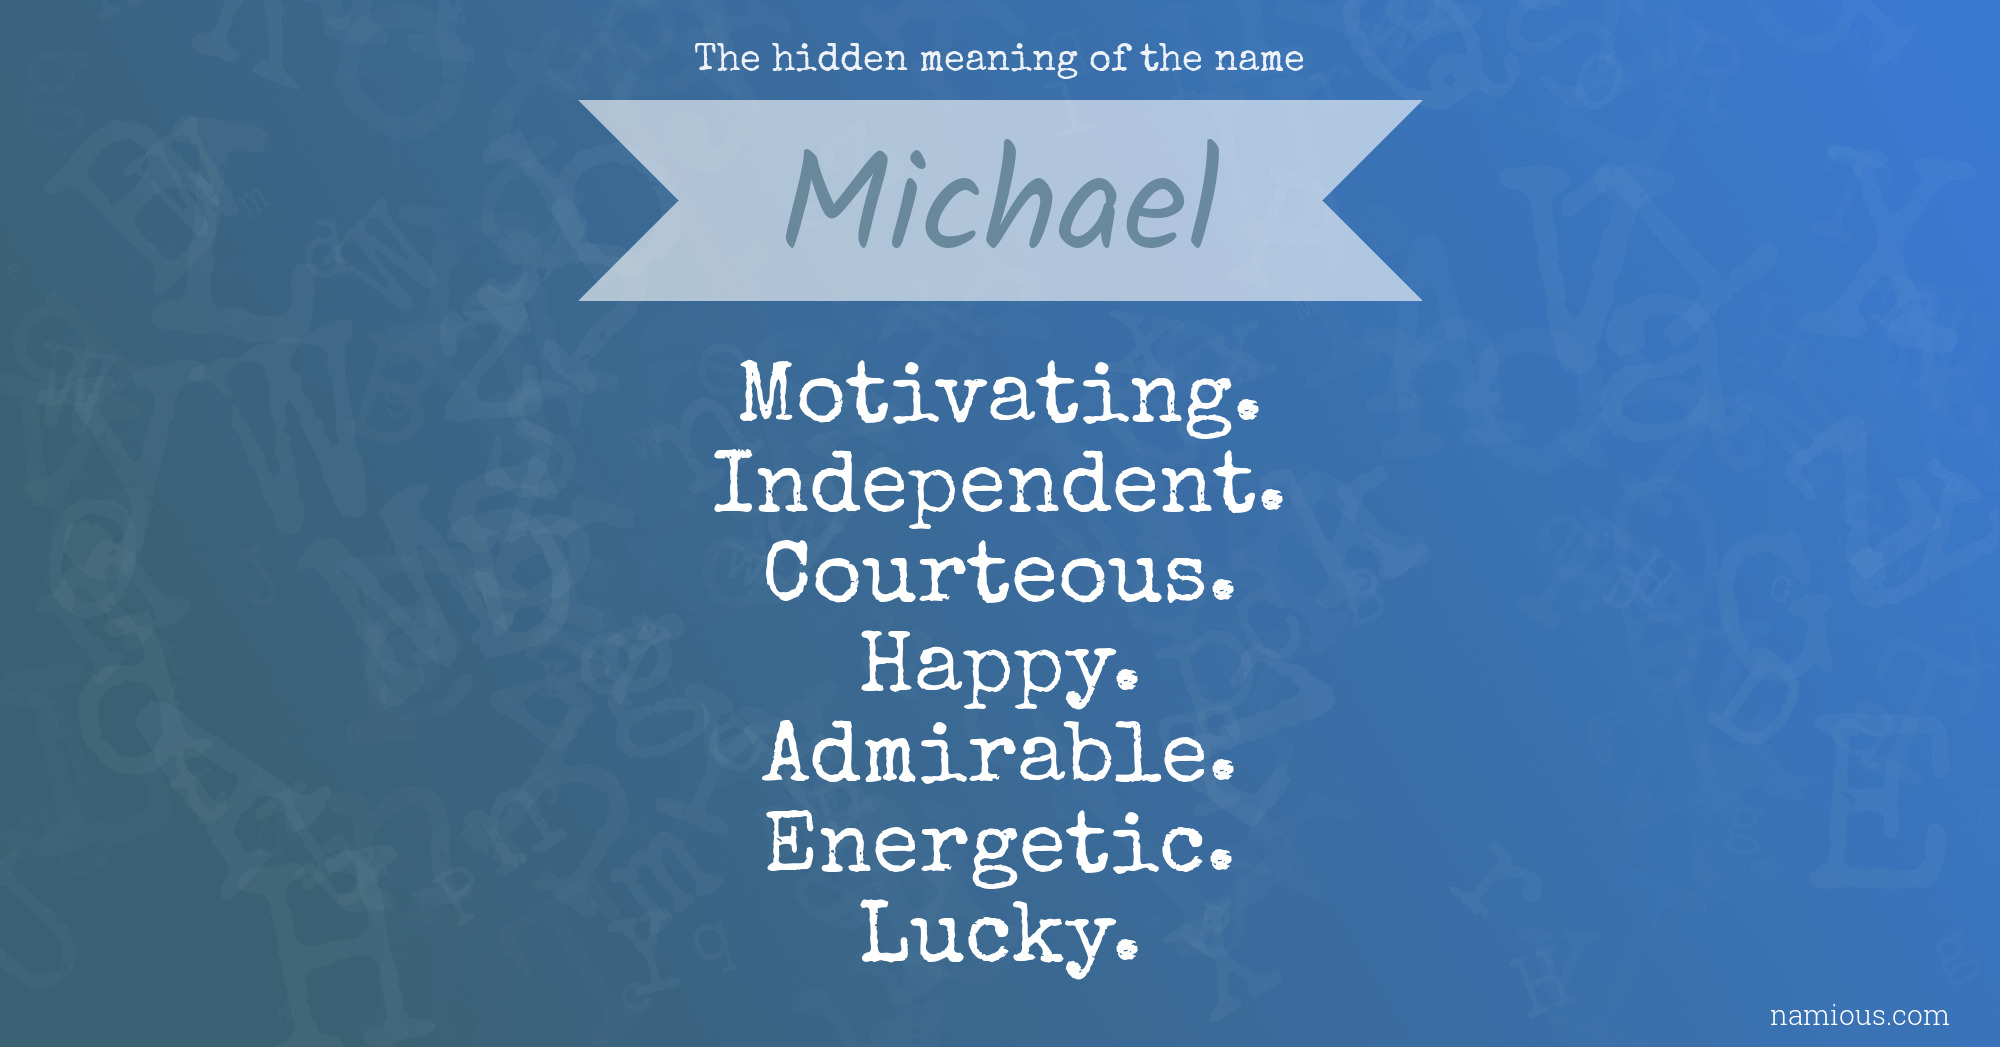 The hidden meaning of the name Michael